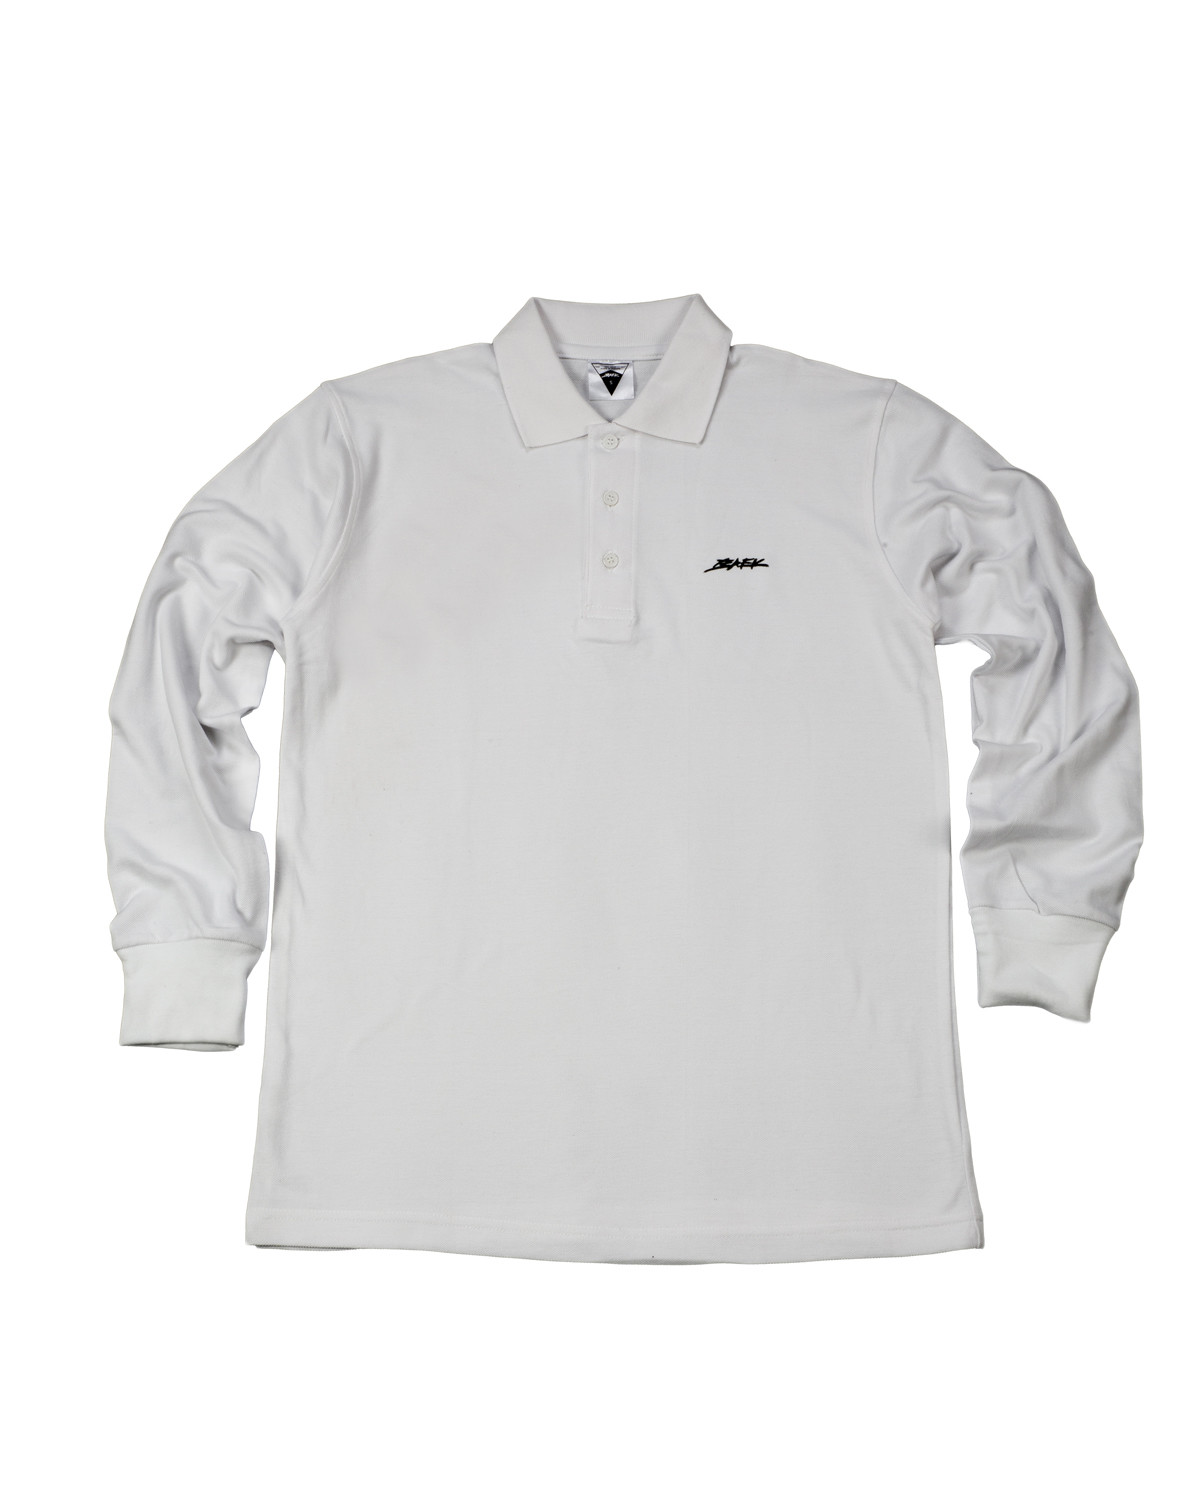 BAEK POLO L/S - WHITE